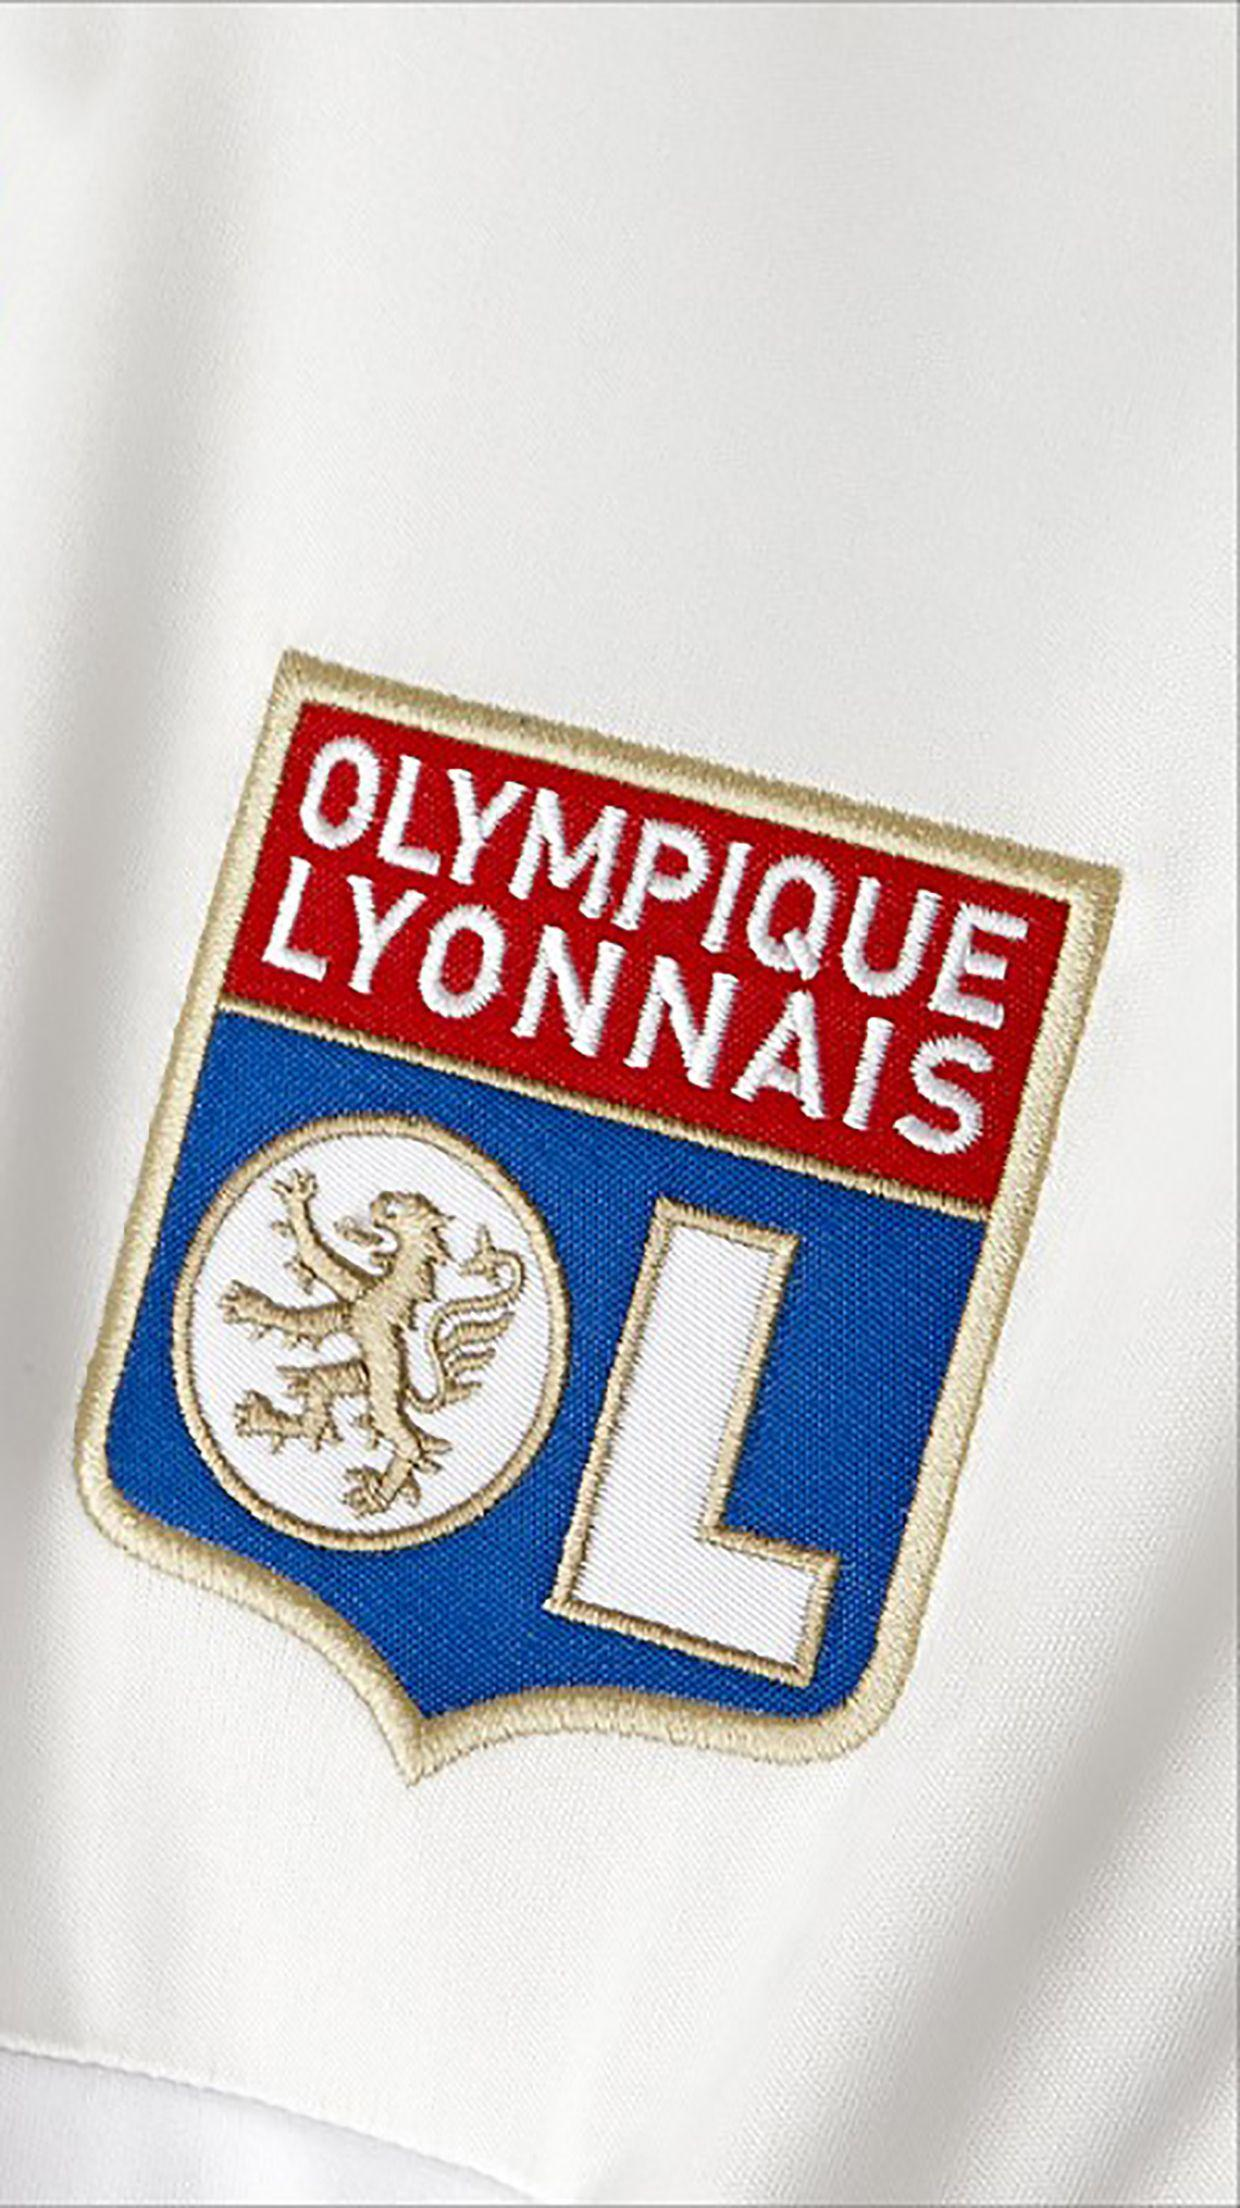 Olympique Lyonnais : Logo 1 Wallpapers for iPhone X, 8, 7, 6